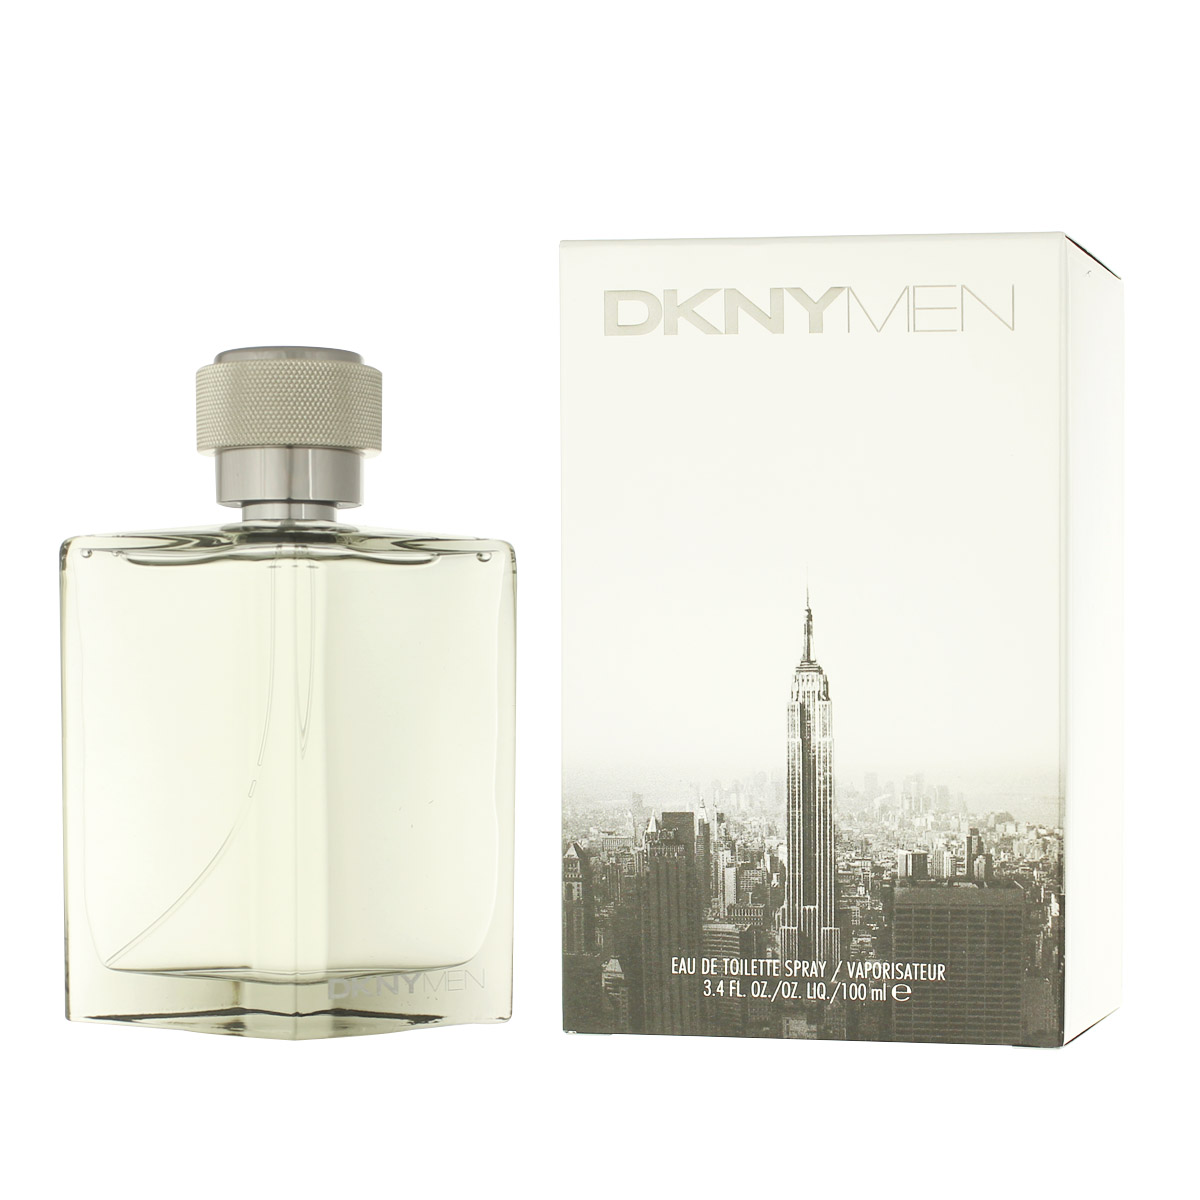 DKNY Donna Karan Men 2009 EDT 100 ml M